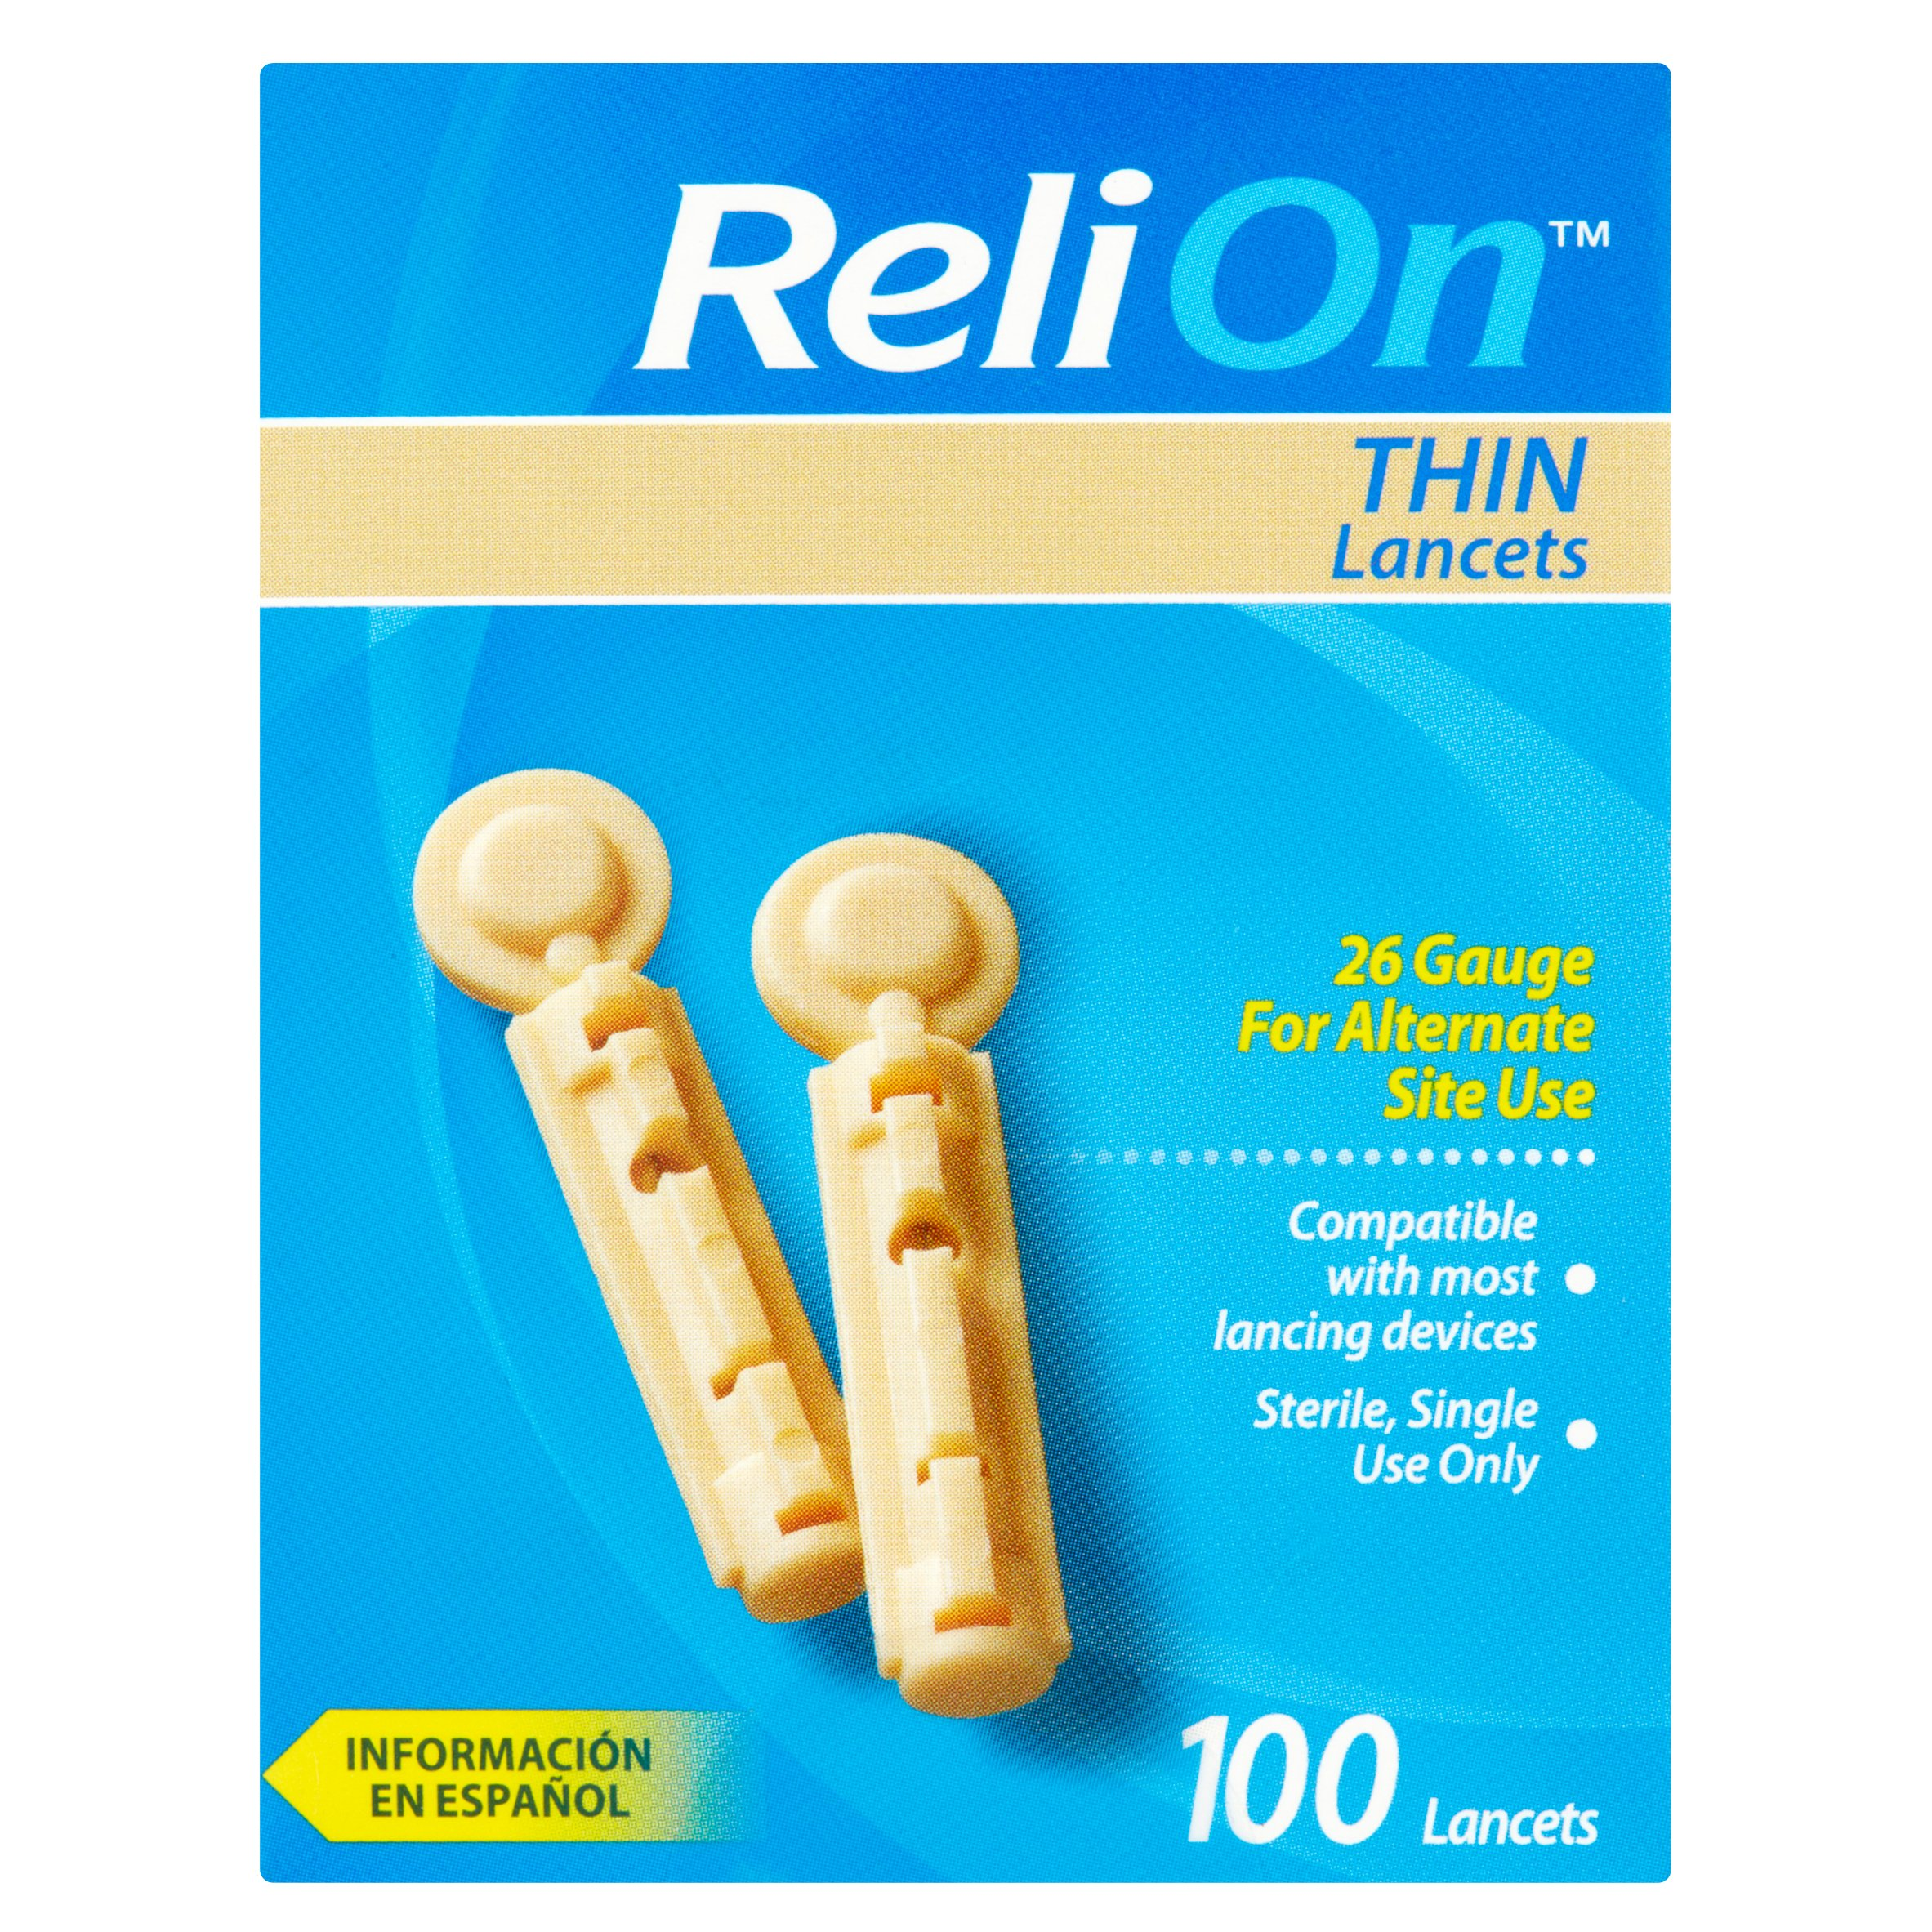 ReliOn 26 Gauge Thin Lancets, 100 Ct